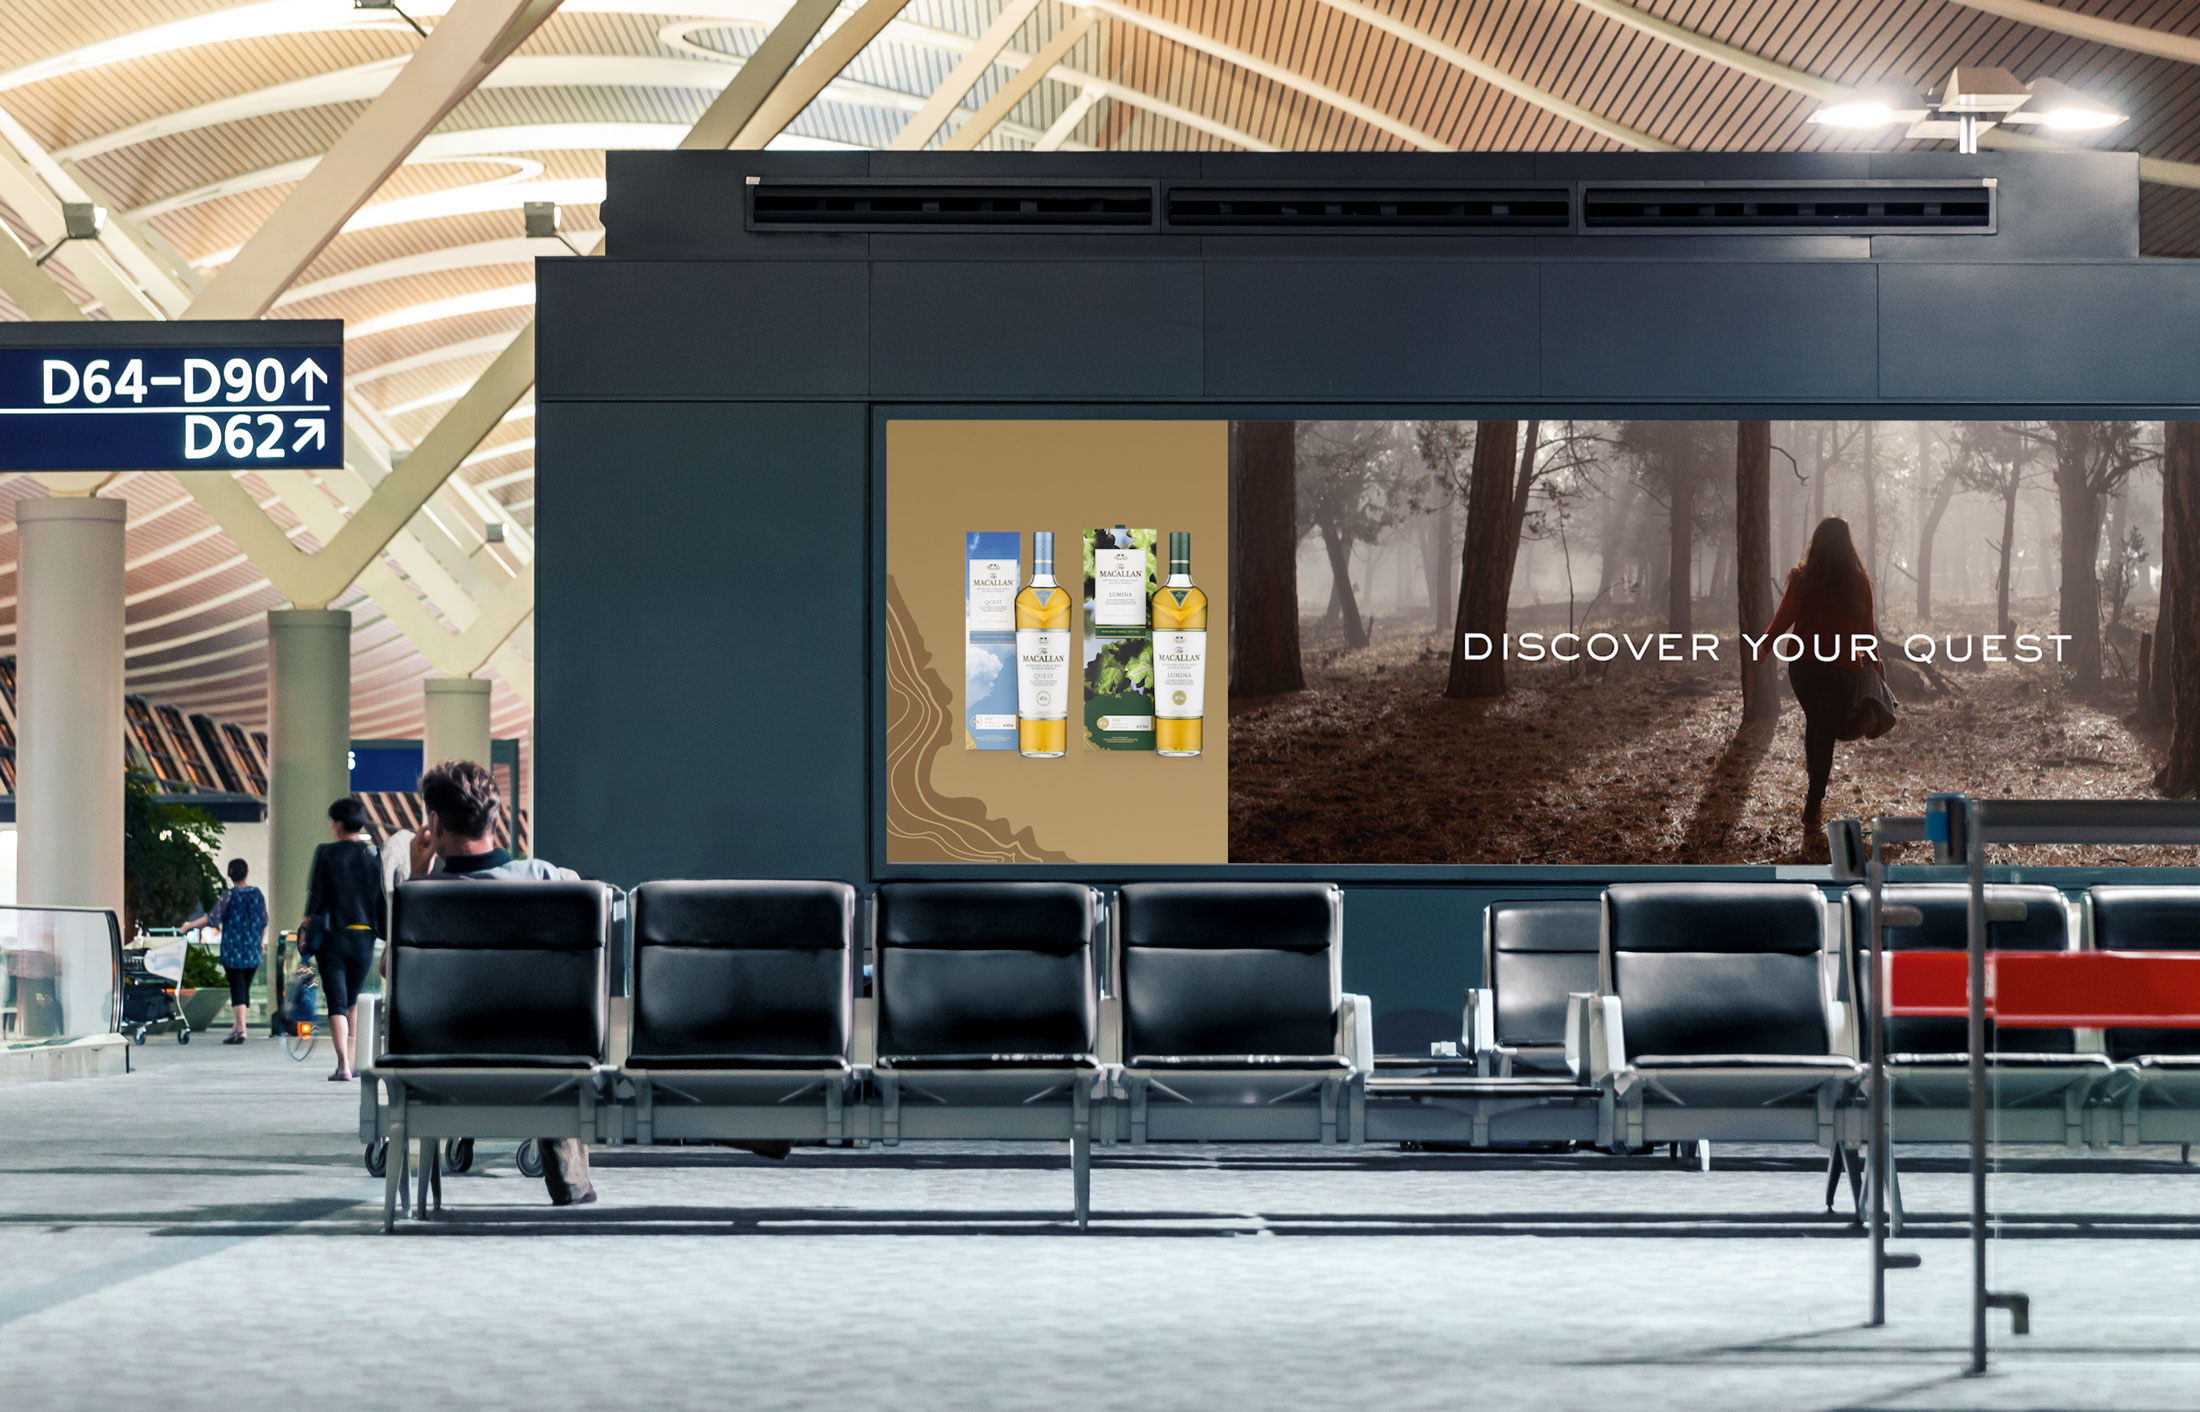 Digital OOH advertising for The Macallan whisky